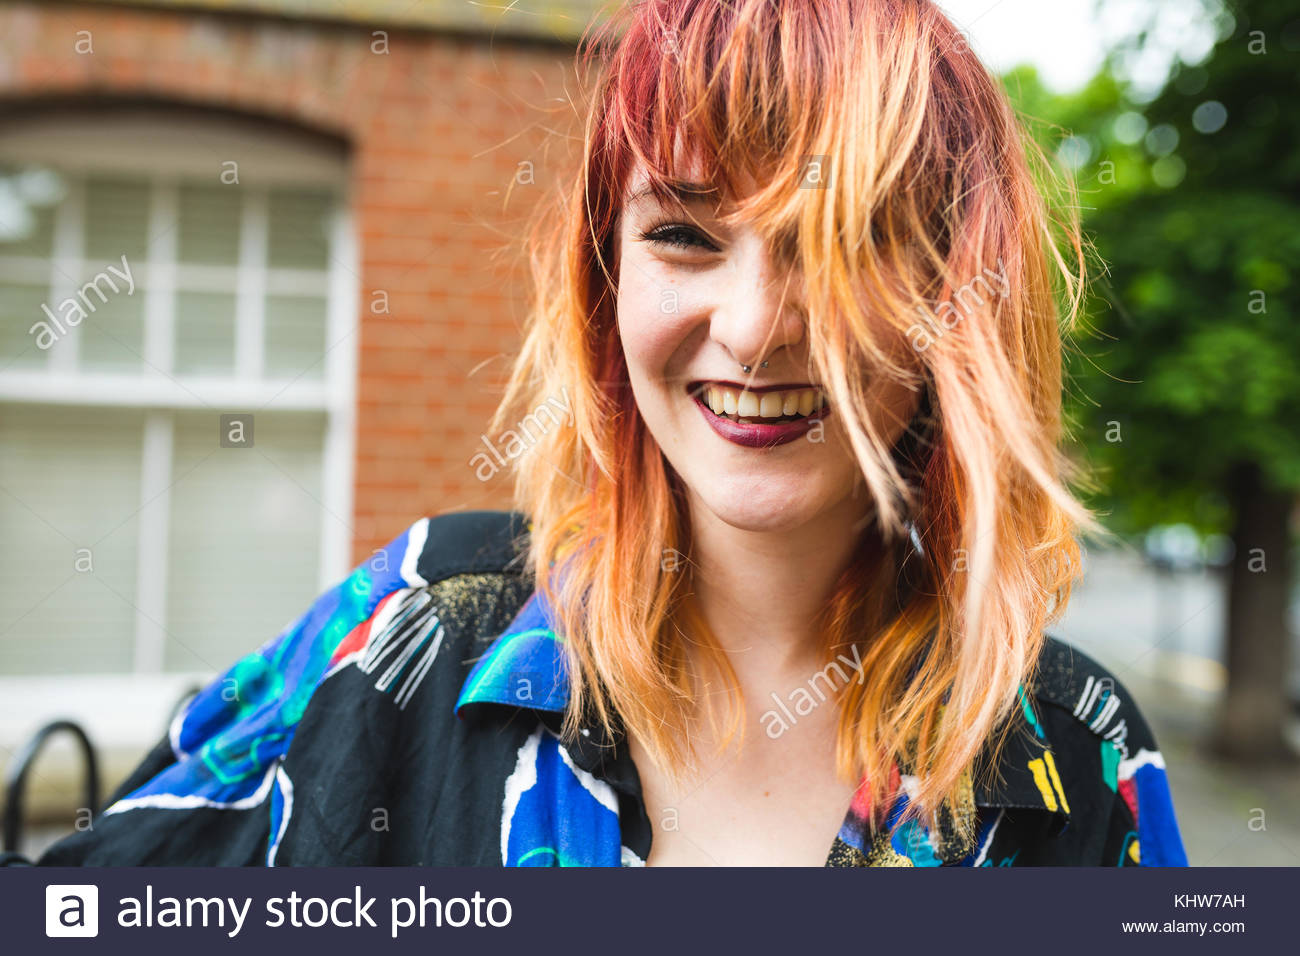 Portrait of young woman with dip dyed hair laughing Stock Photo